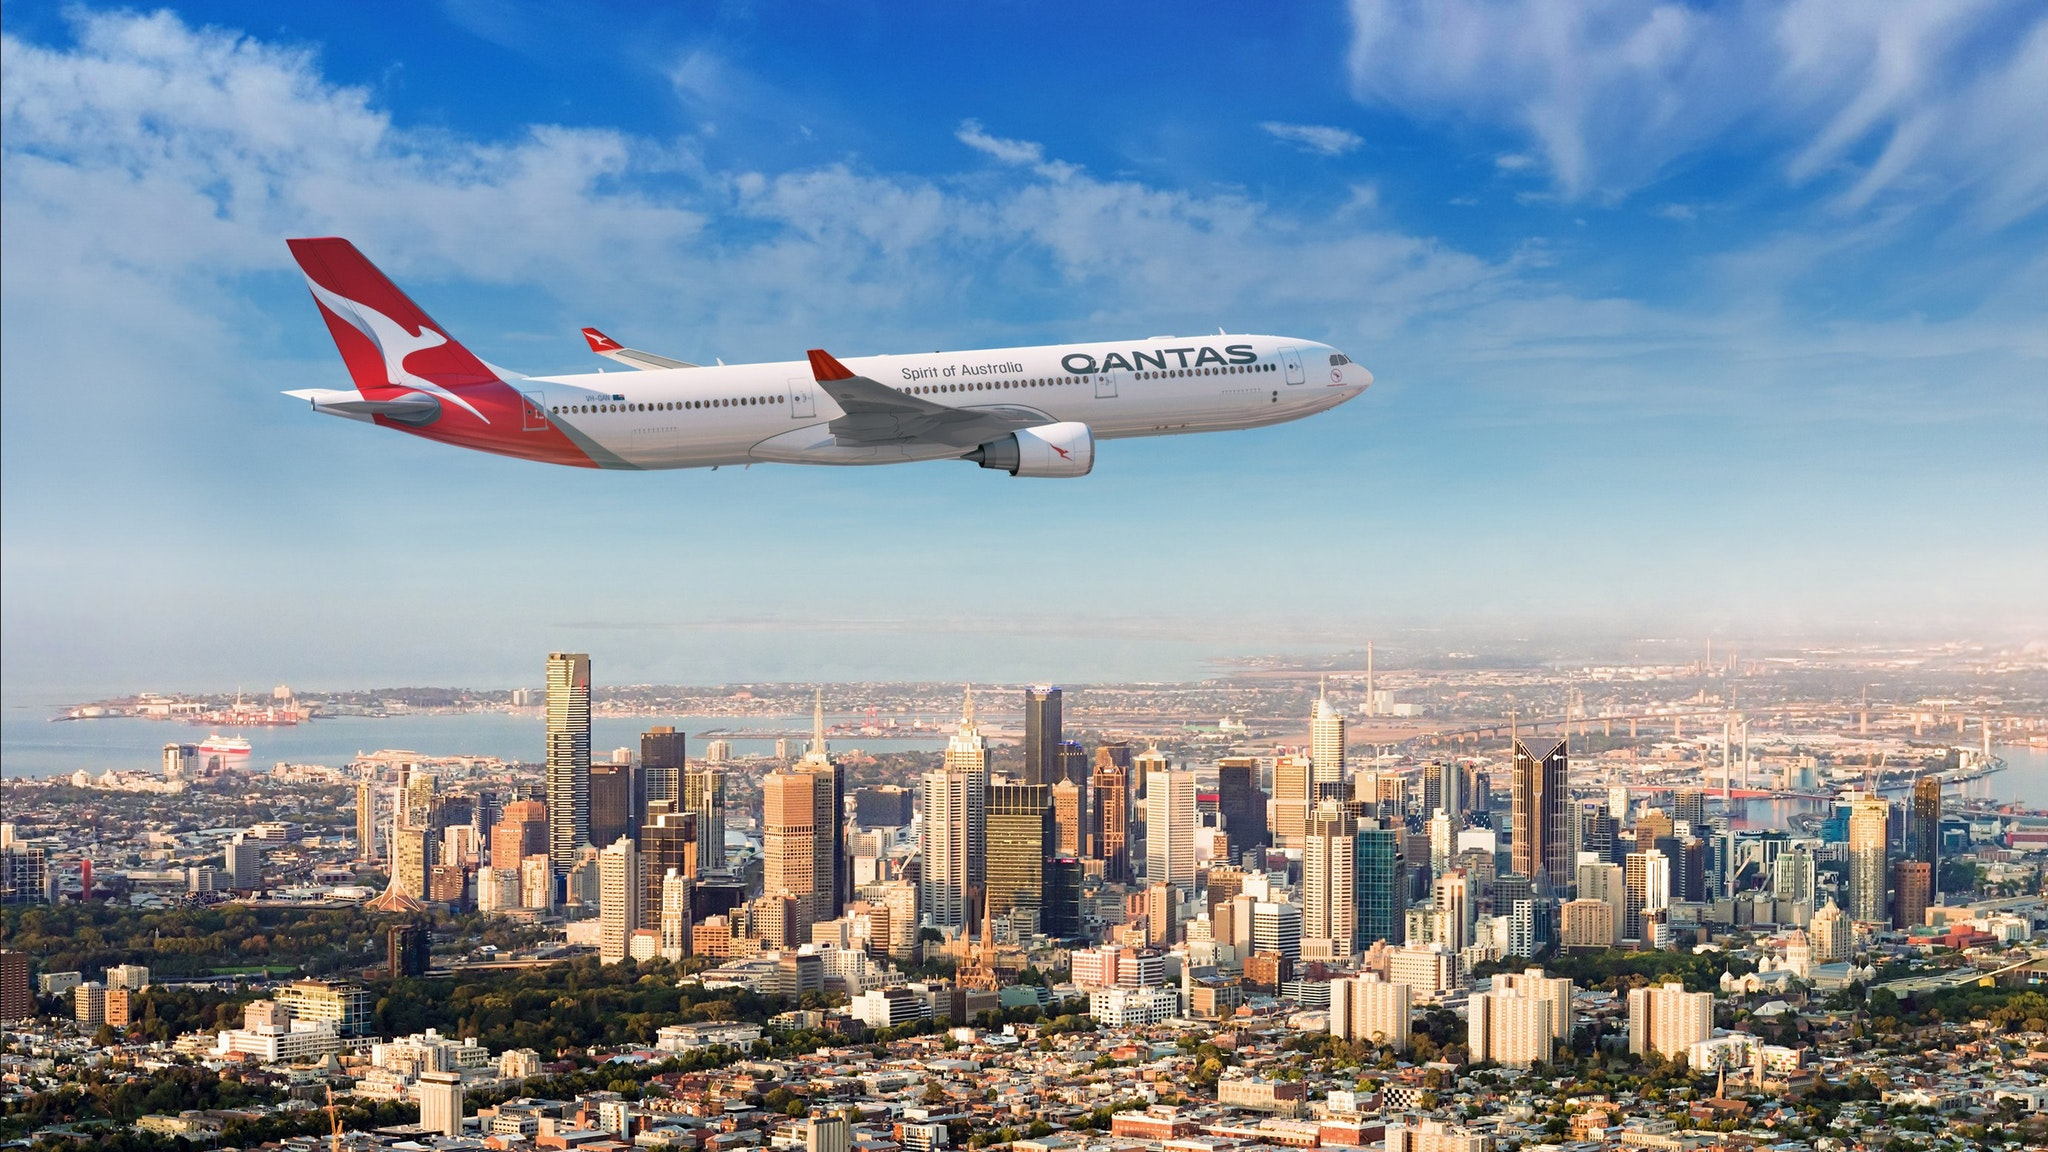 Qantas aircraft over Melbourne